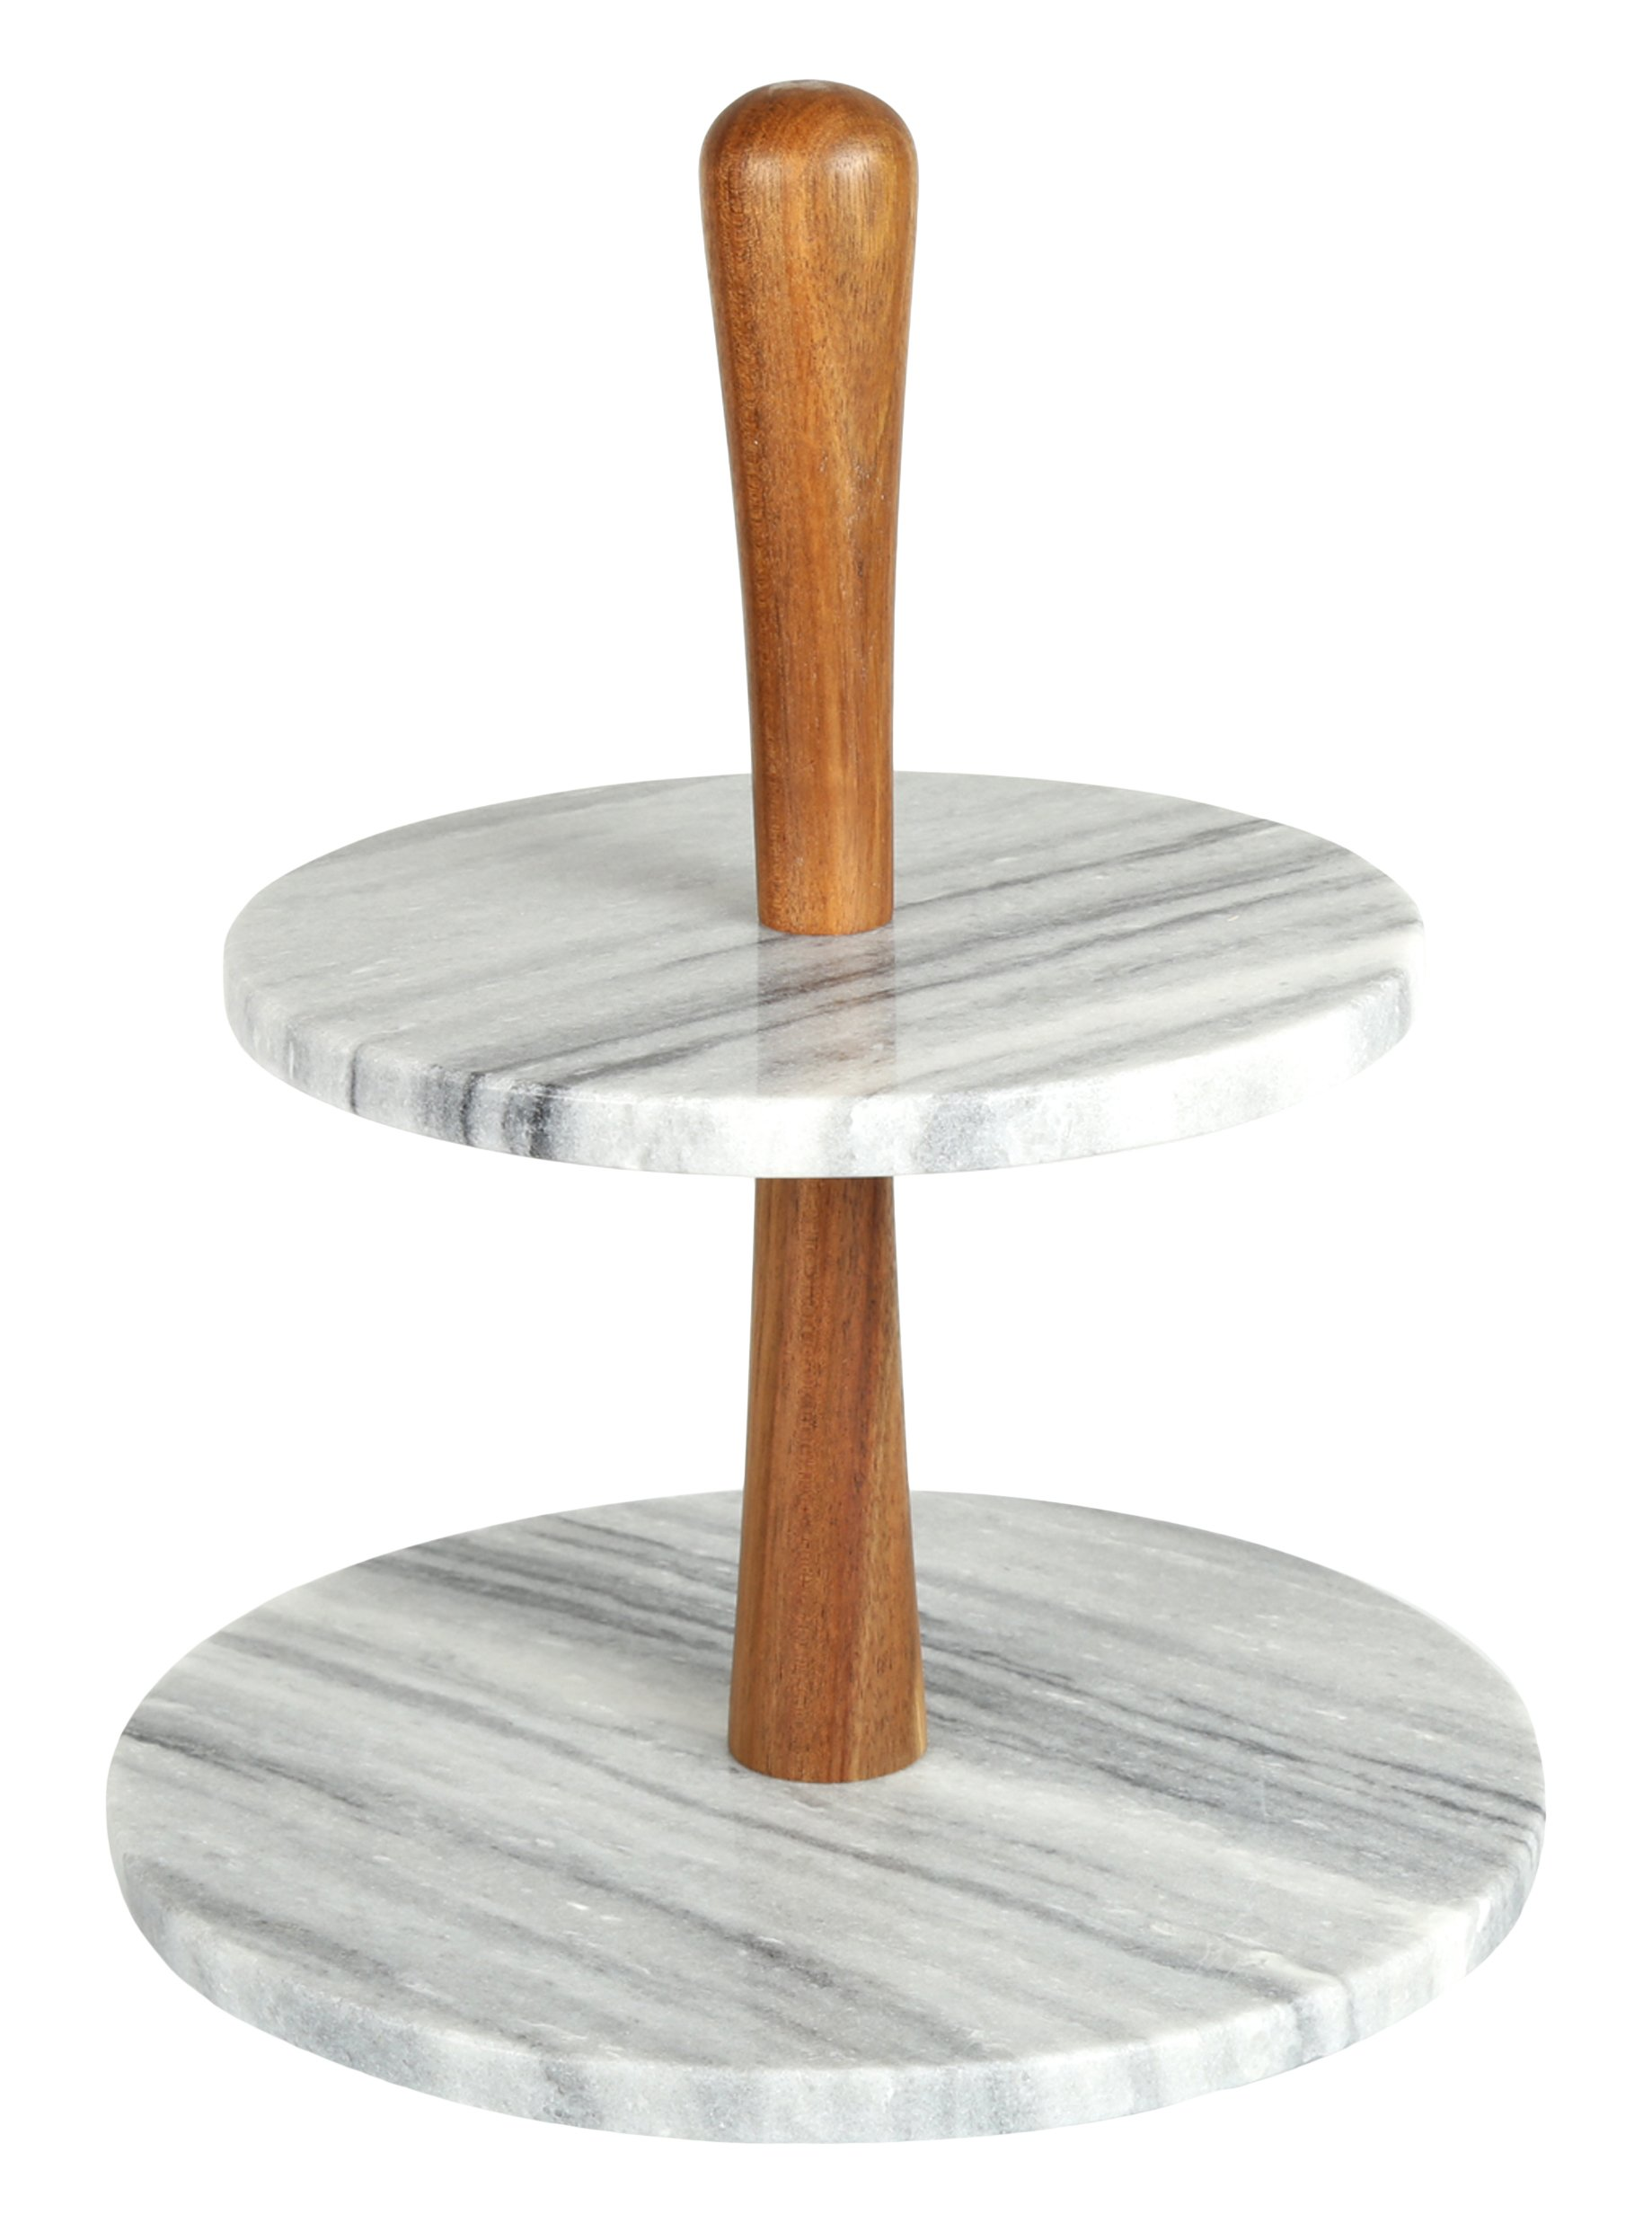 Creative Home 32981 Natural Marble Stone and Acacia Wood 2-Tier Cake Stand Dessert Server 10'' Diam. x 11-3/4'' H Grey